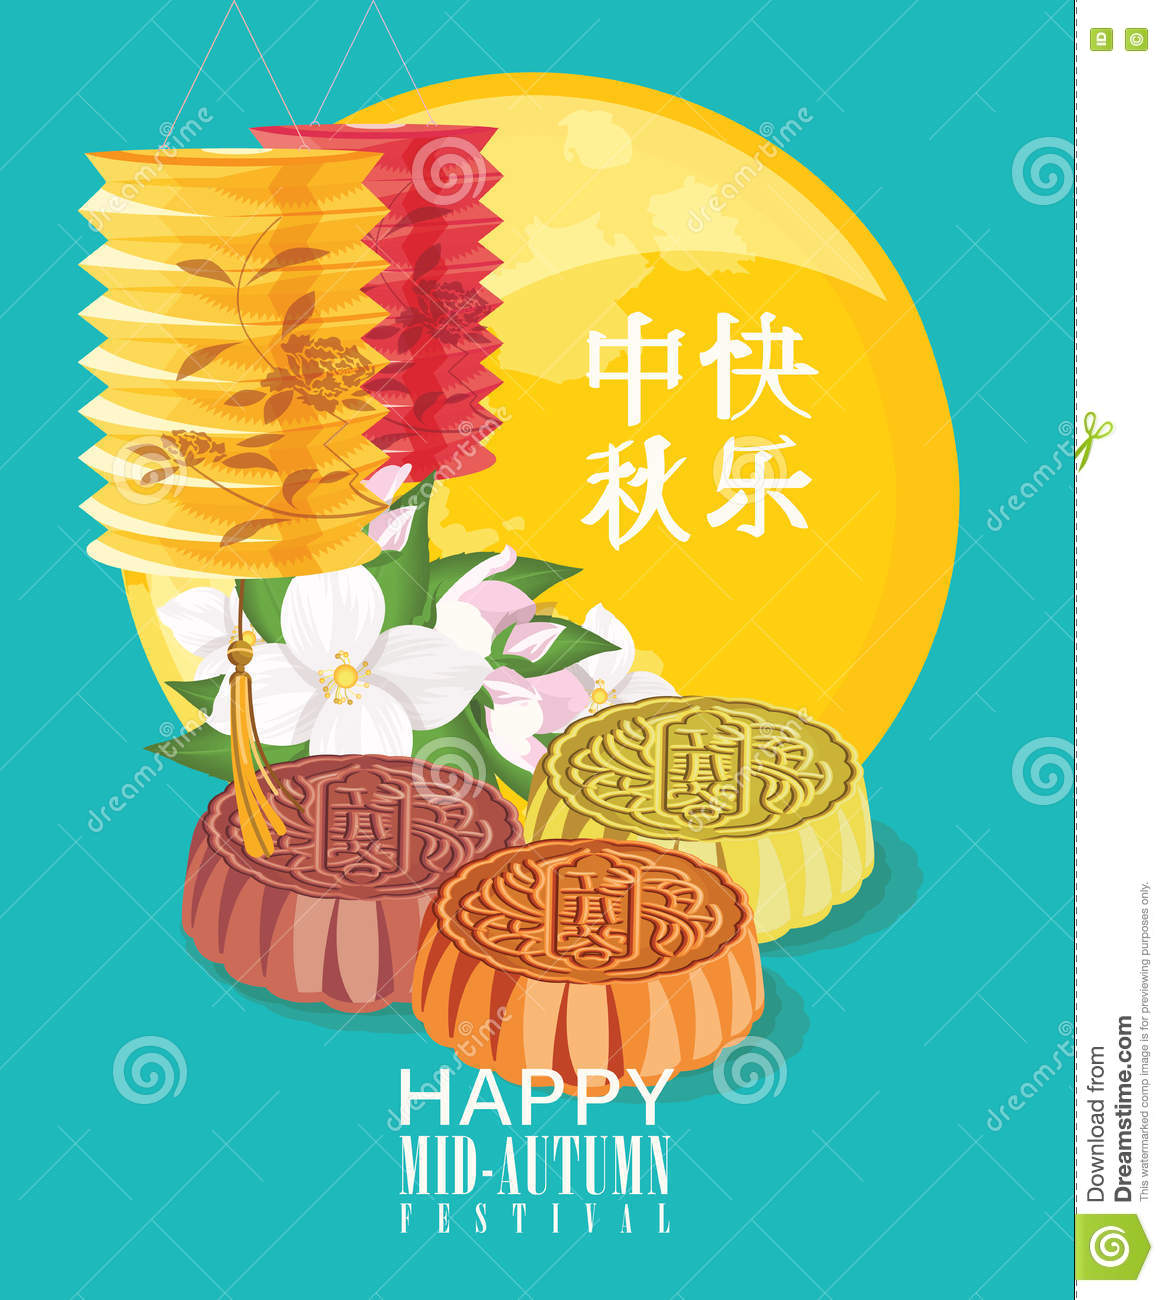 mid autumn festival The autumn moon festival video - celebrating asian/chinese adoption and culture find this pin and more on mid autumn festival by angie saw in this visit to the famous autumn moon festival in san francisco, we discover colorful lion.